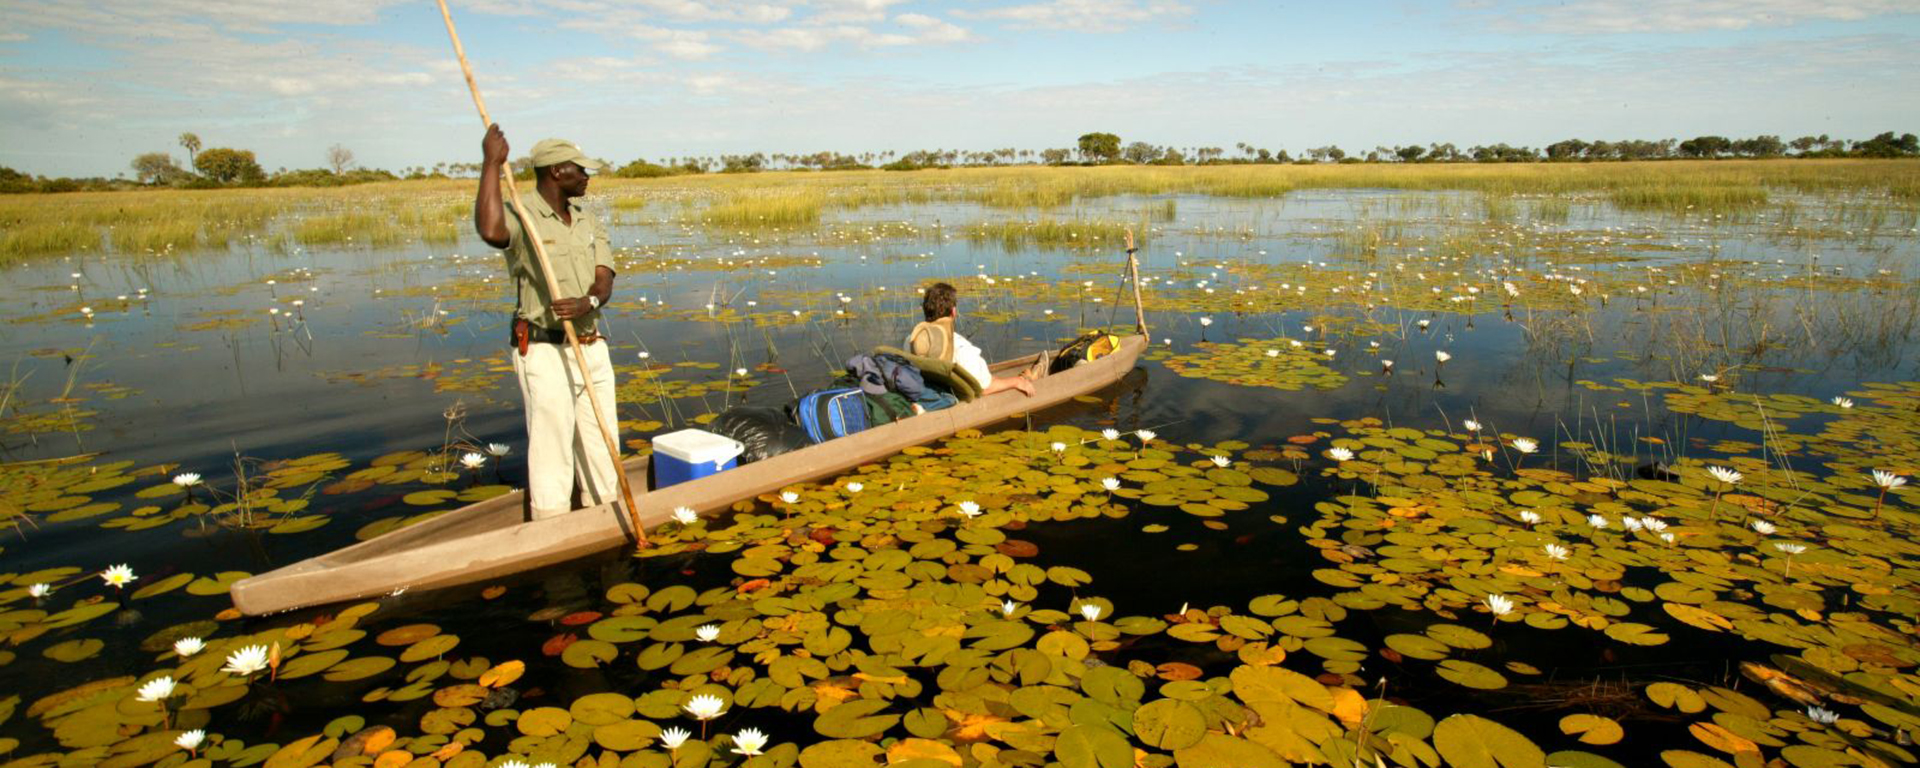 Being poled along in a mokoro is one of the Delta's most blissful solo experiences.